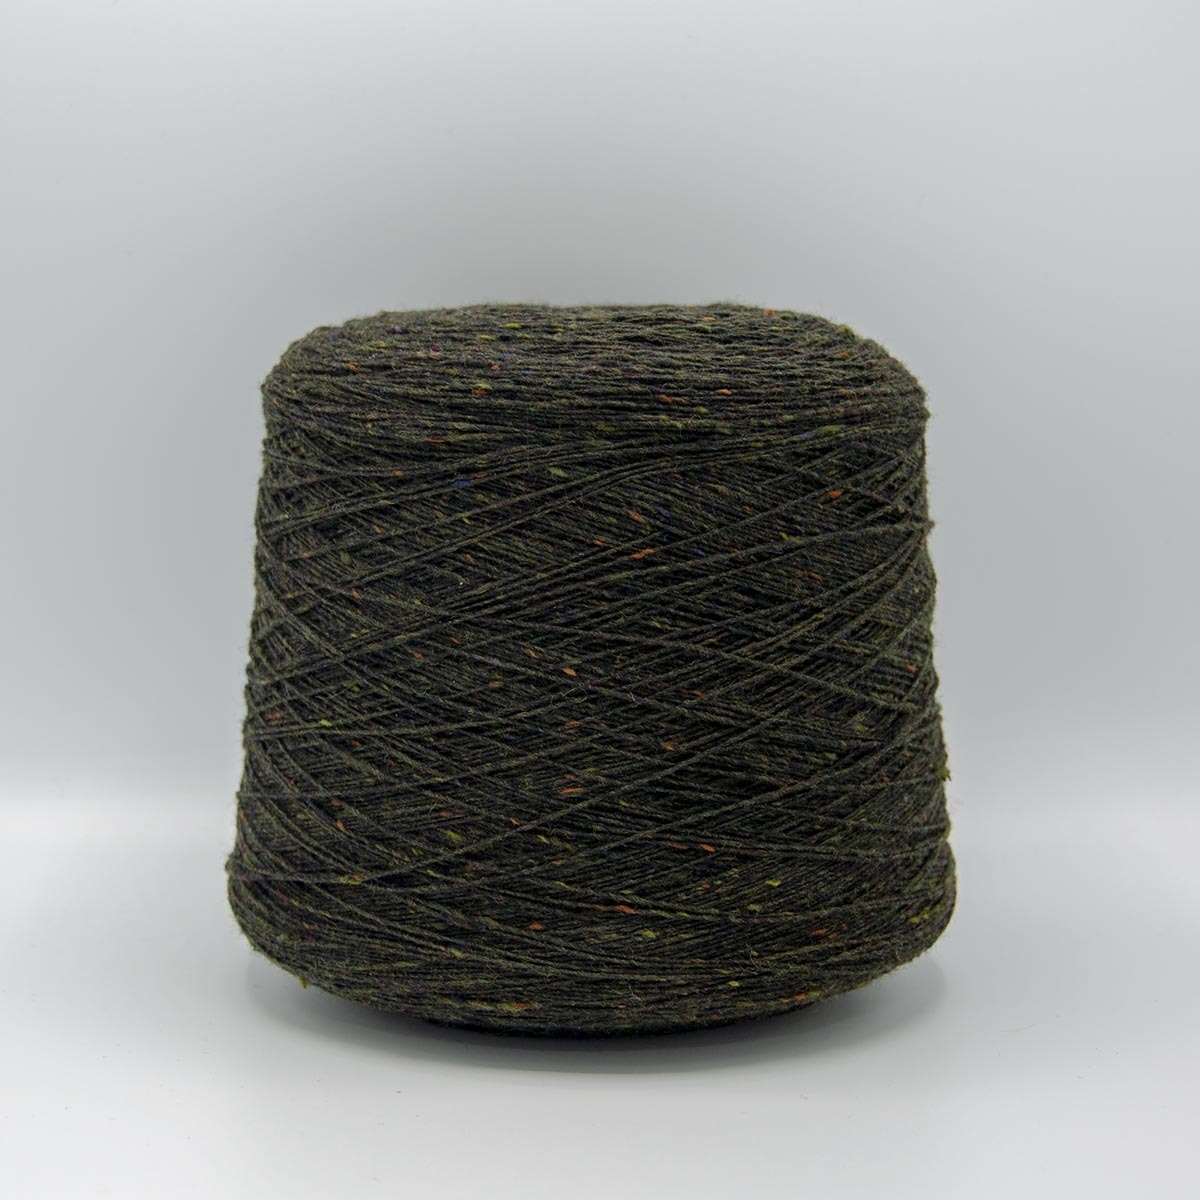 Knoll Yarns Soft Donegal (одинарный твид) - 5517